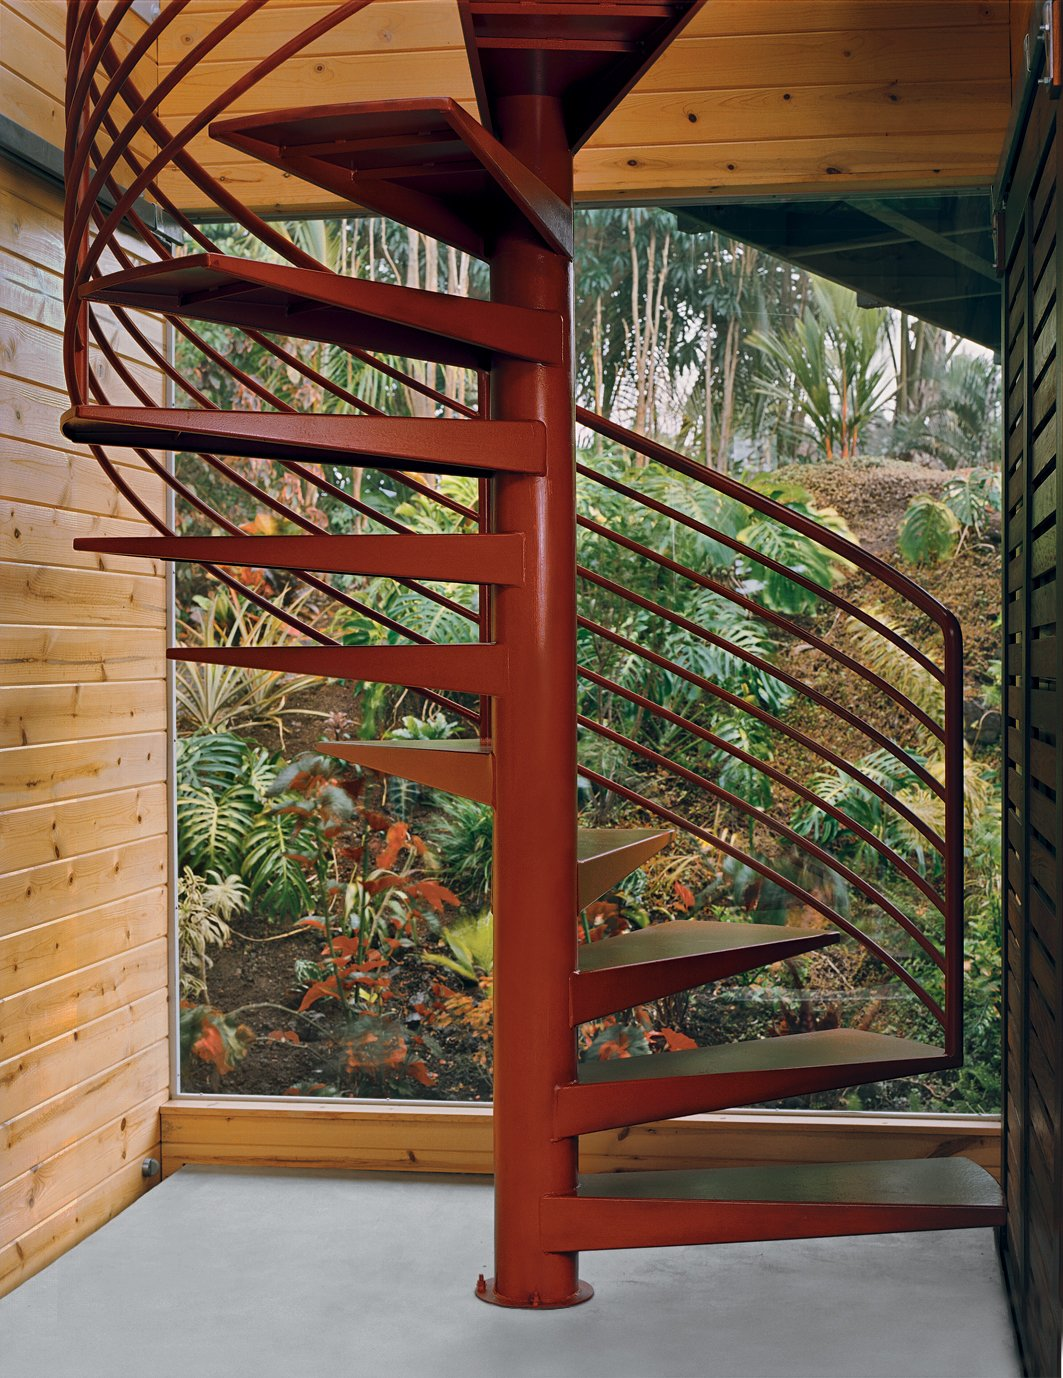 Staircase, Metal Railing, and Metal Tread The spiral stairs were fabricated in the Bay Area and shipped in the same container as the furniture.  190+ Best Modern Staircase Ideas from Lava Flow 4, The Big Island